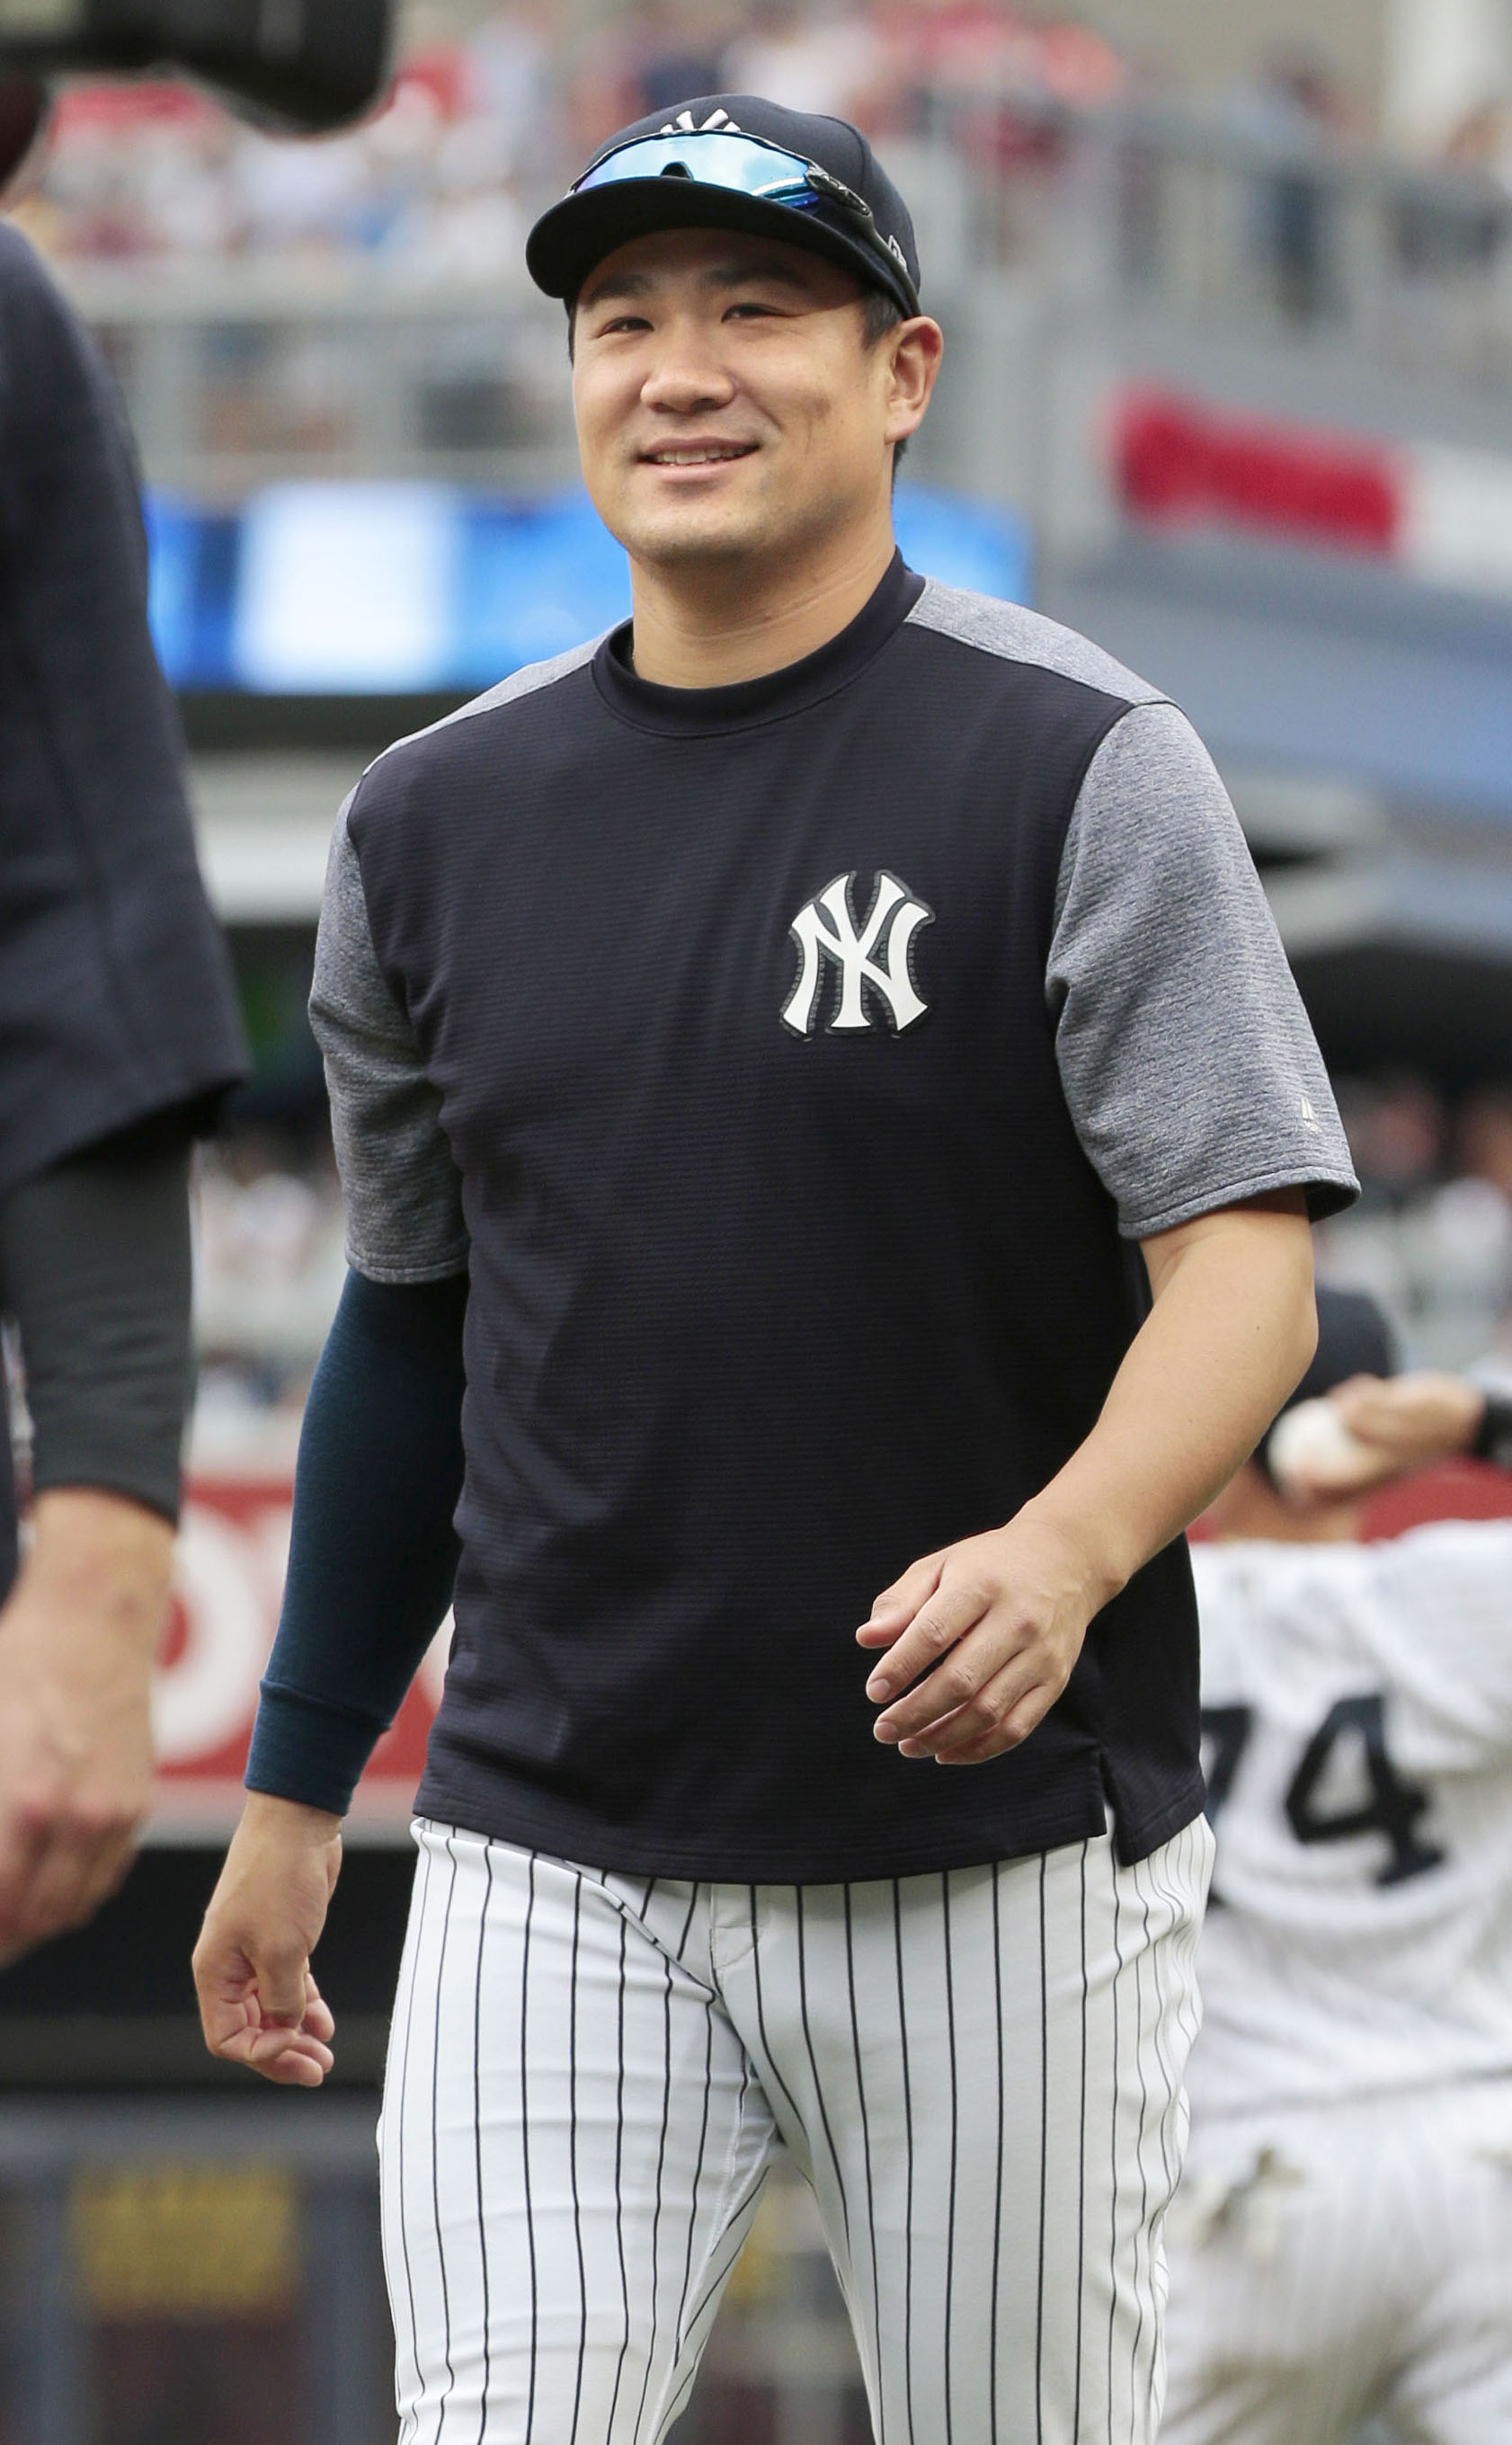 Baseball: Yankees' Tanaka goes on DL with shoulder inflammation